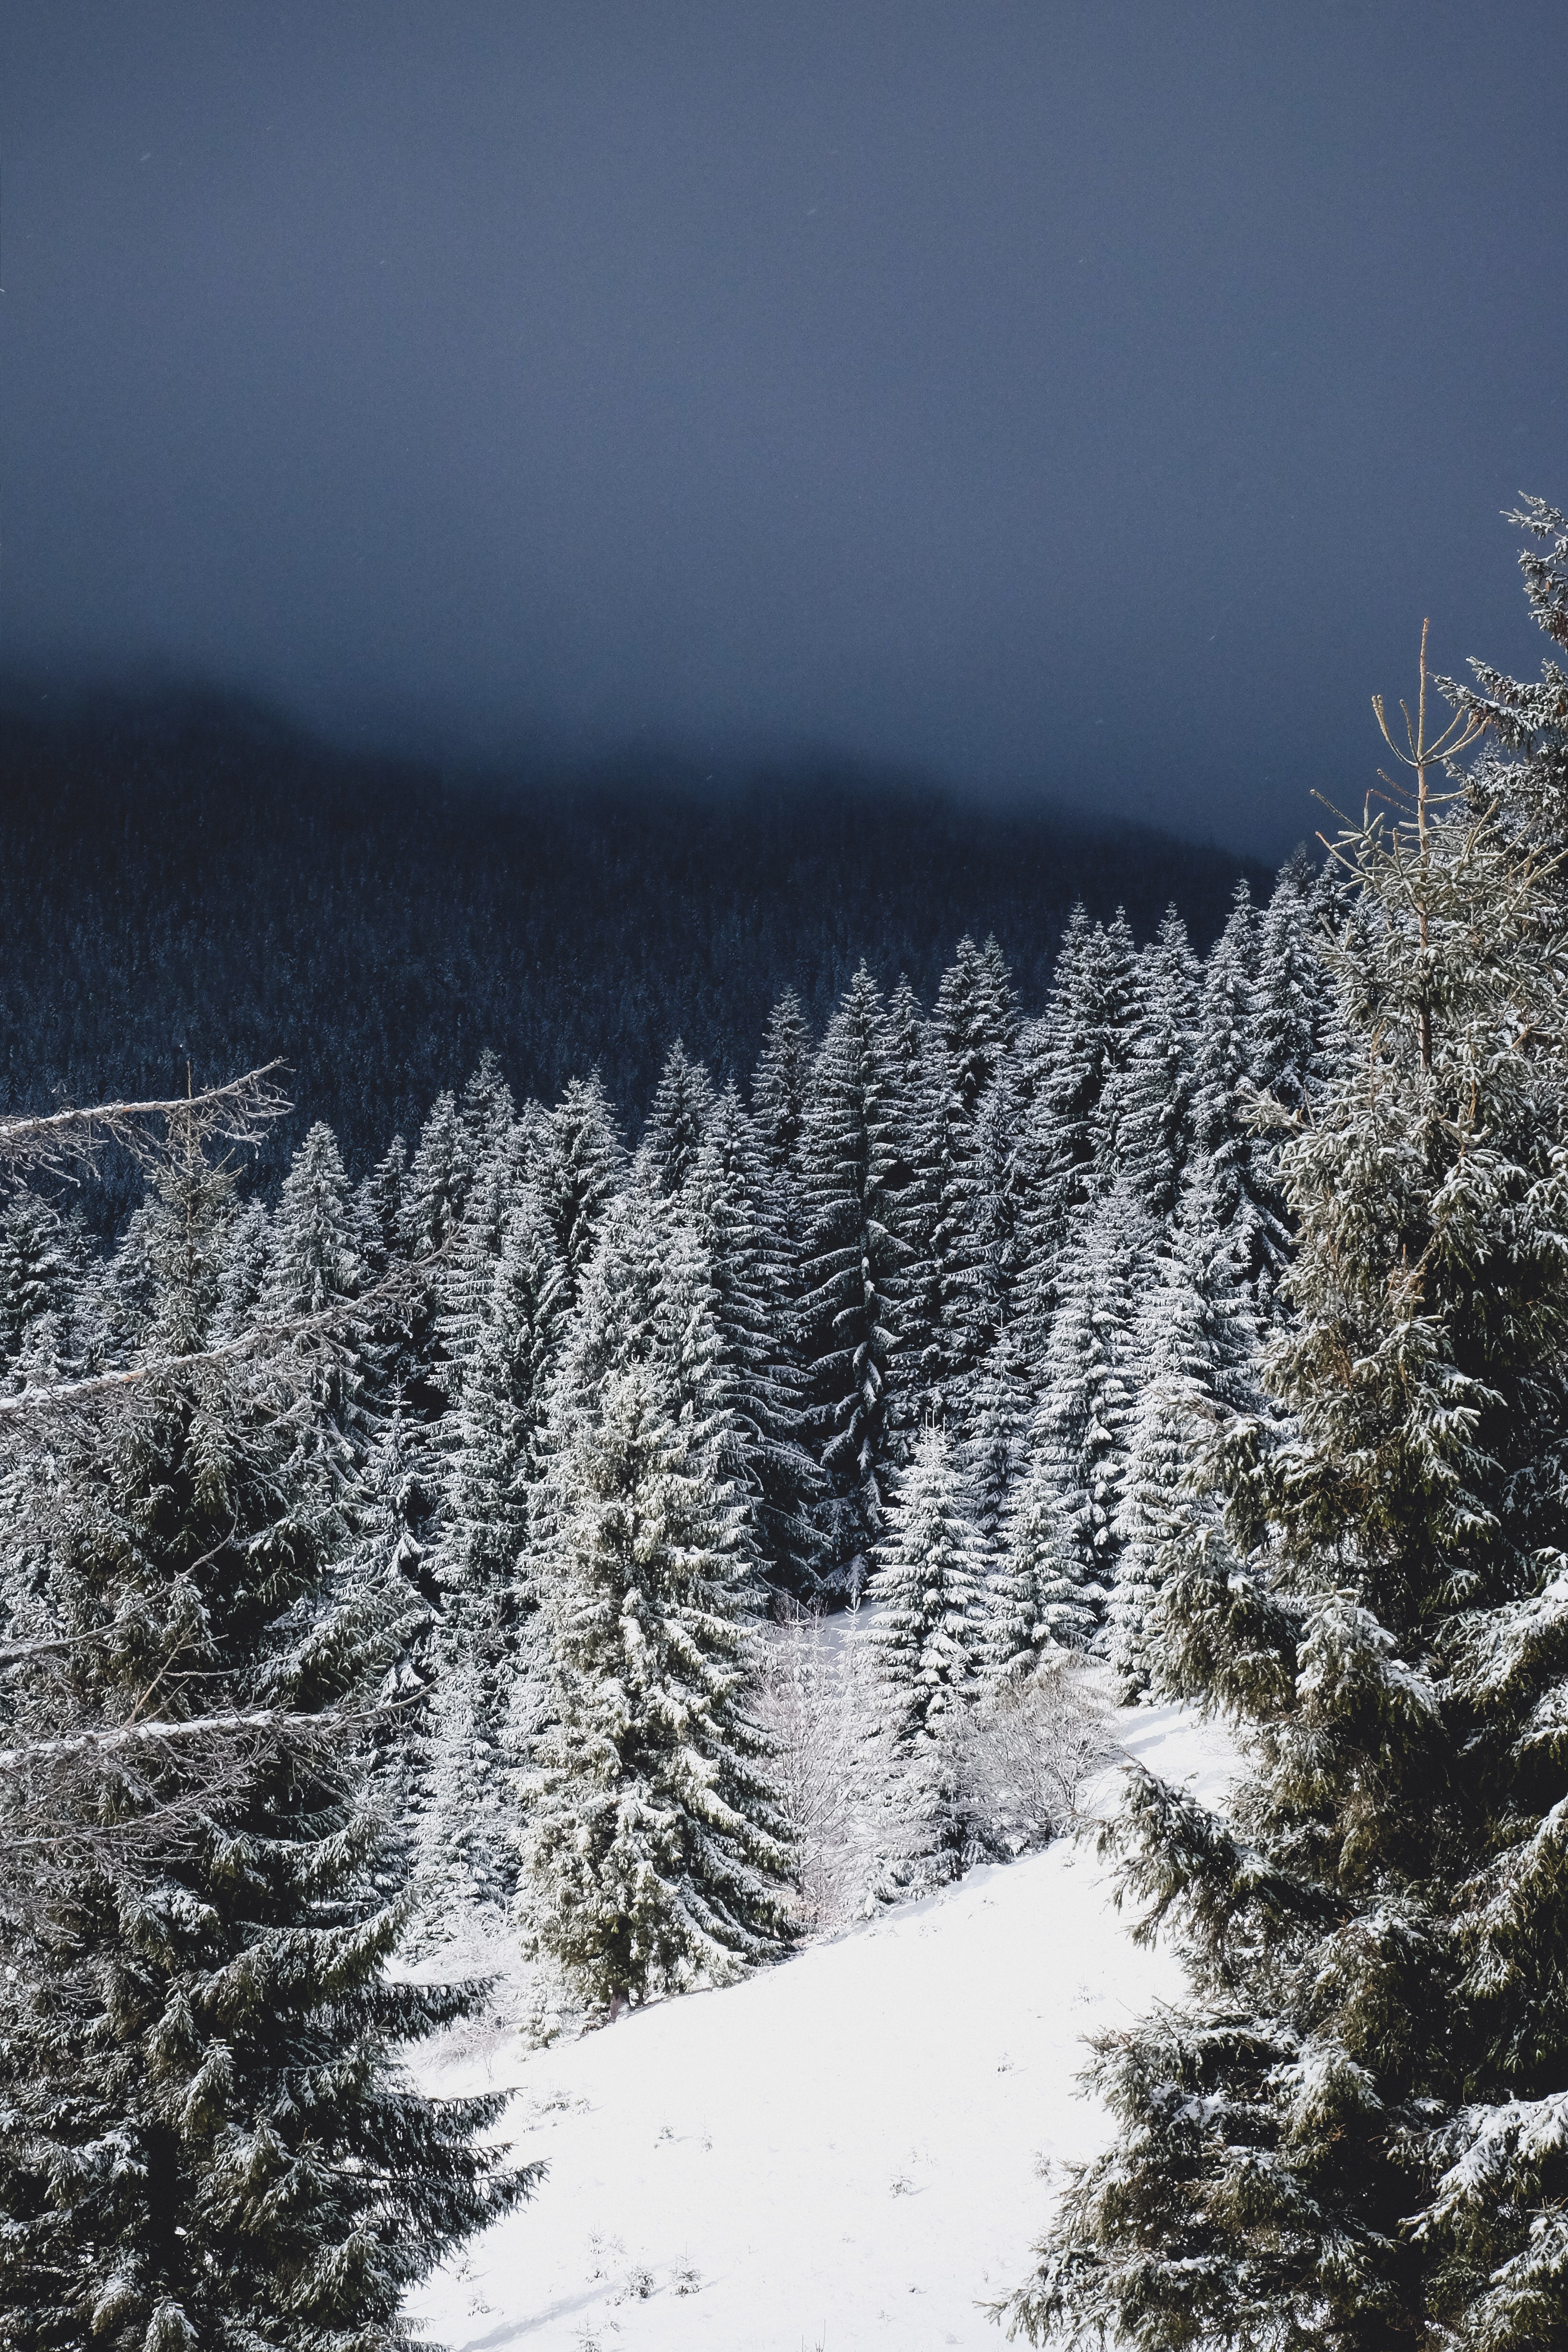 A forest covered in snow sitting on a mountain with dark clouds above